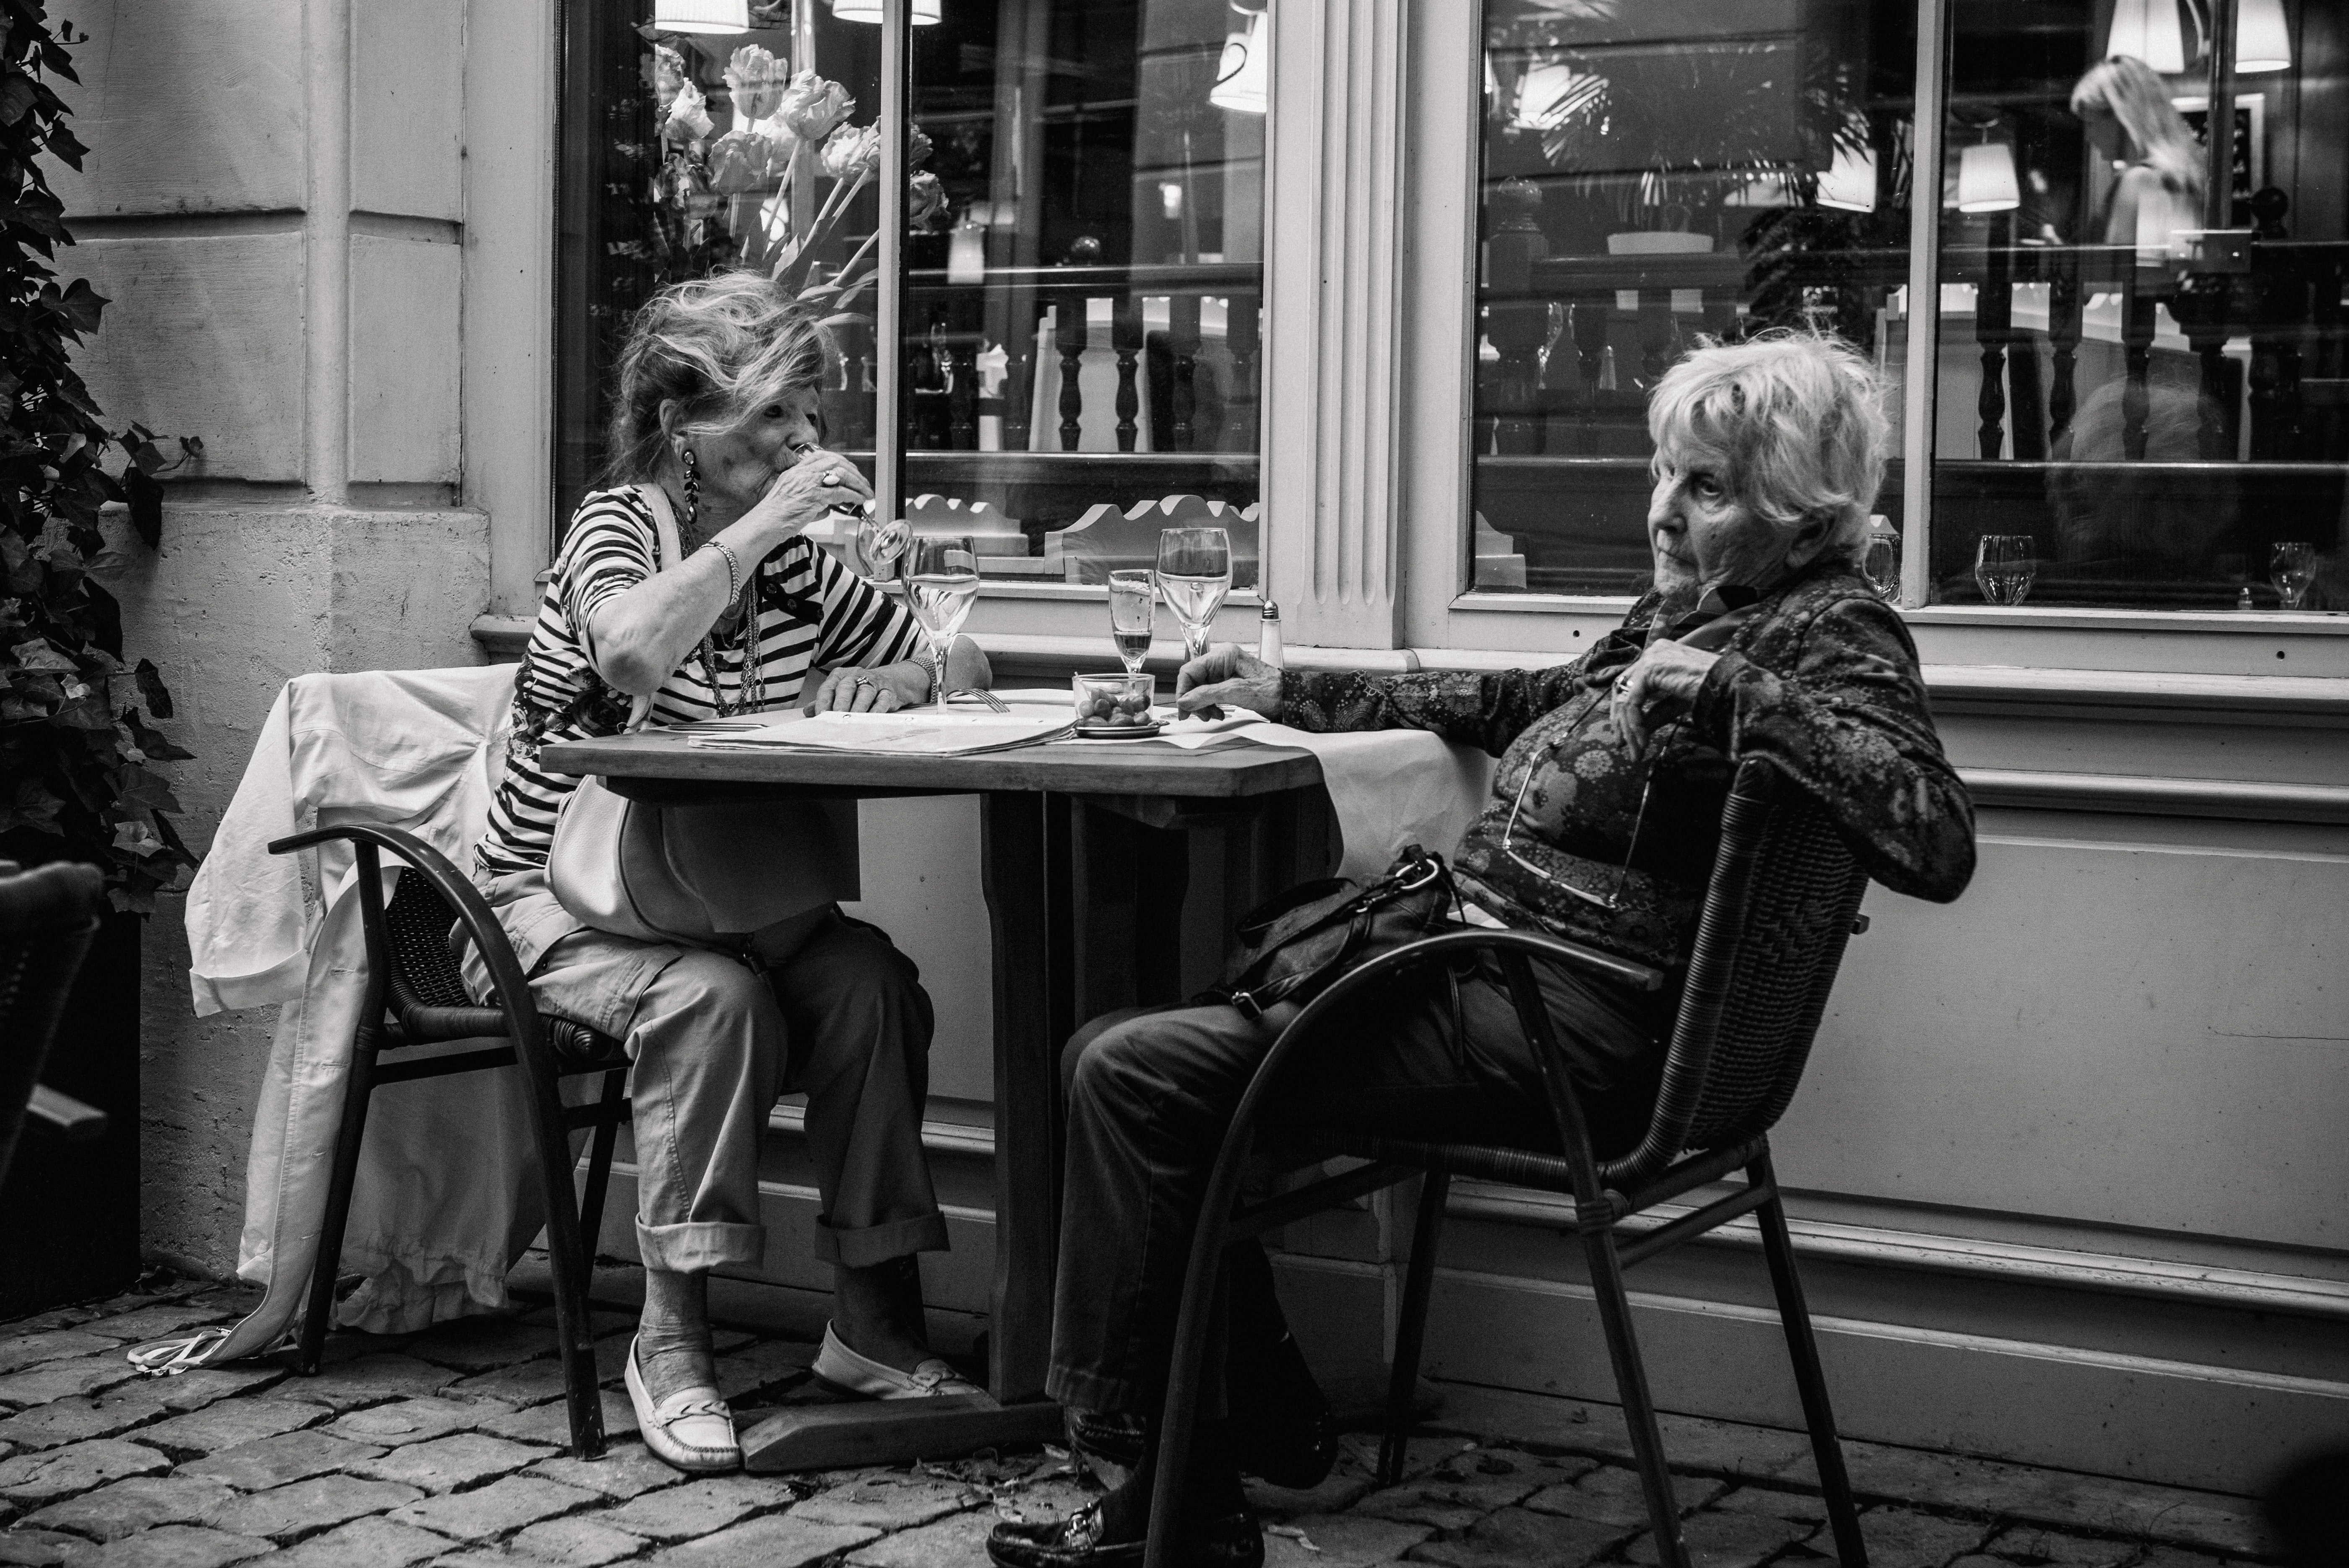 Black and white photo of women drinking wine in a restaurant.